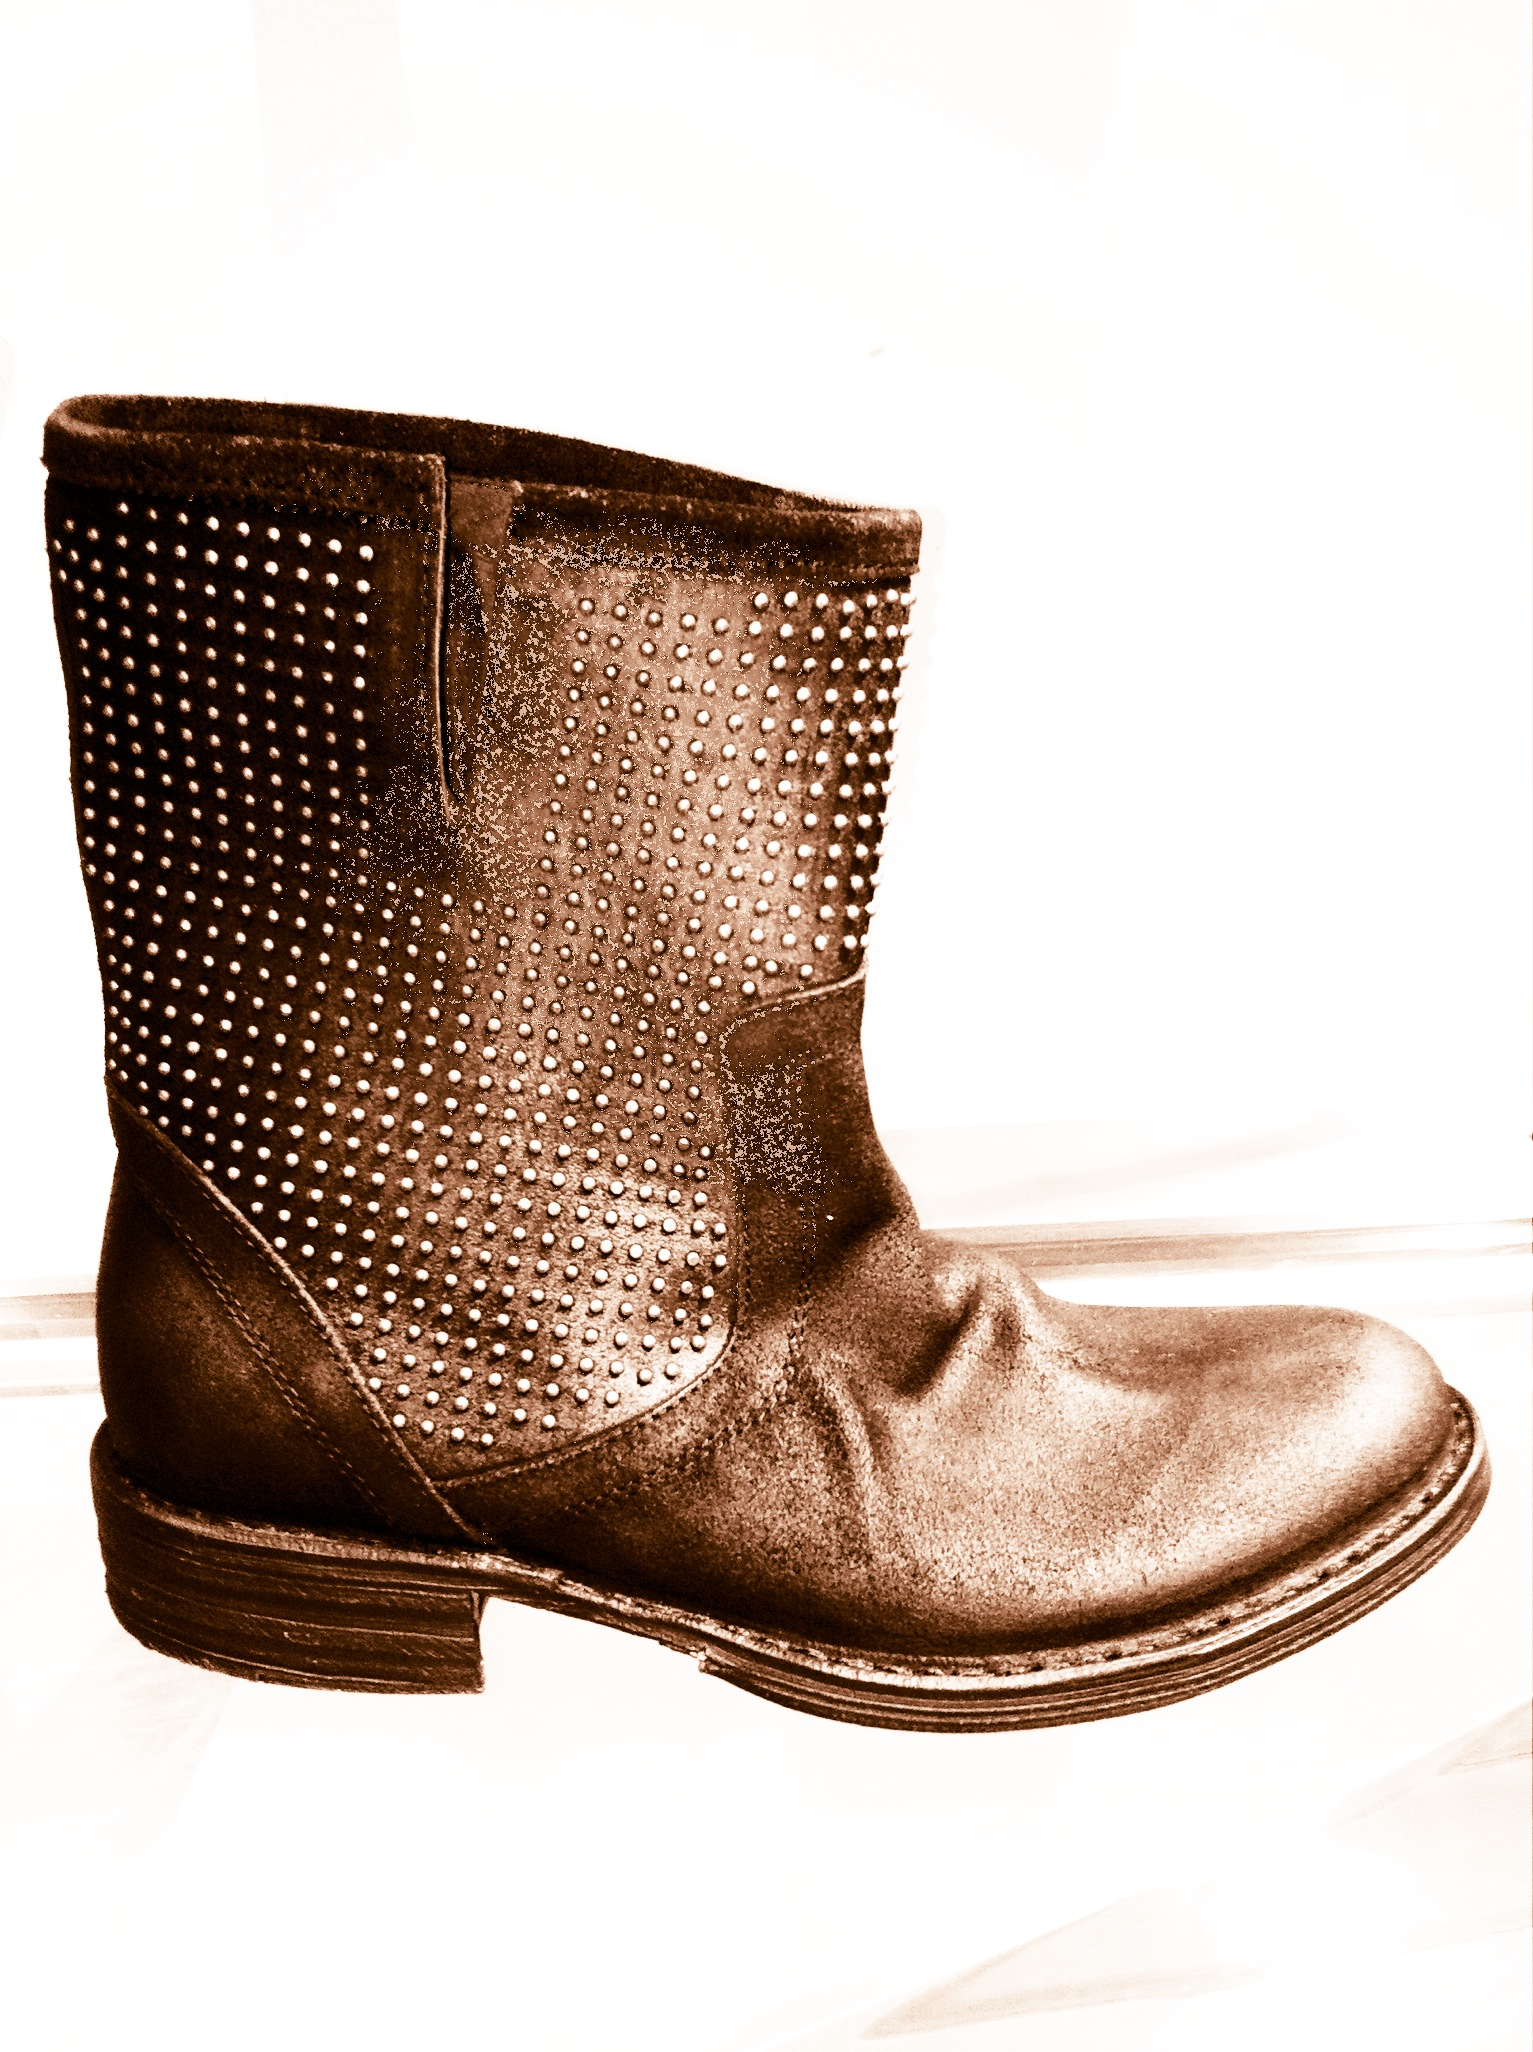 Giving insecurity the BOOT!!! (specifically, the Fiorentini & Baker boot)